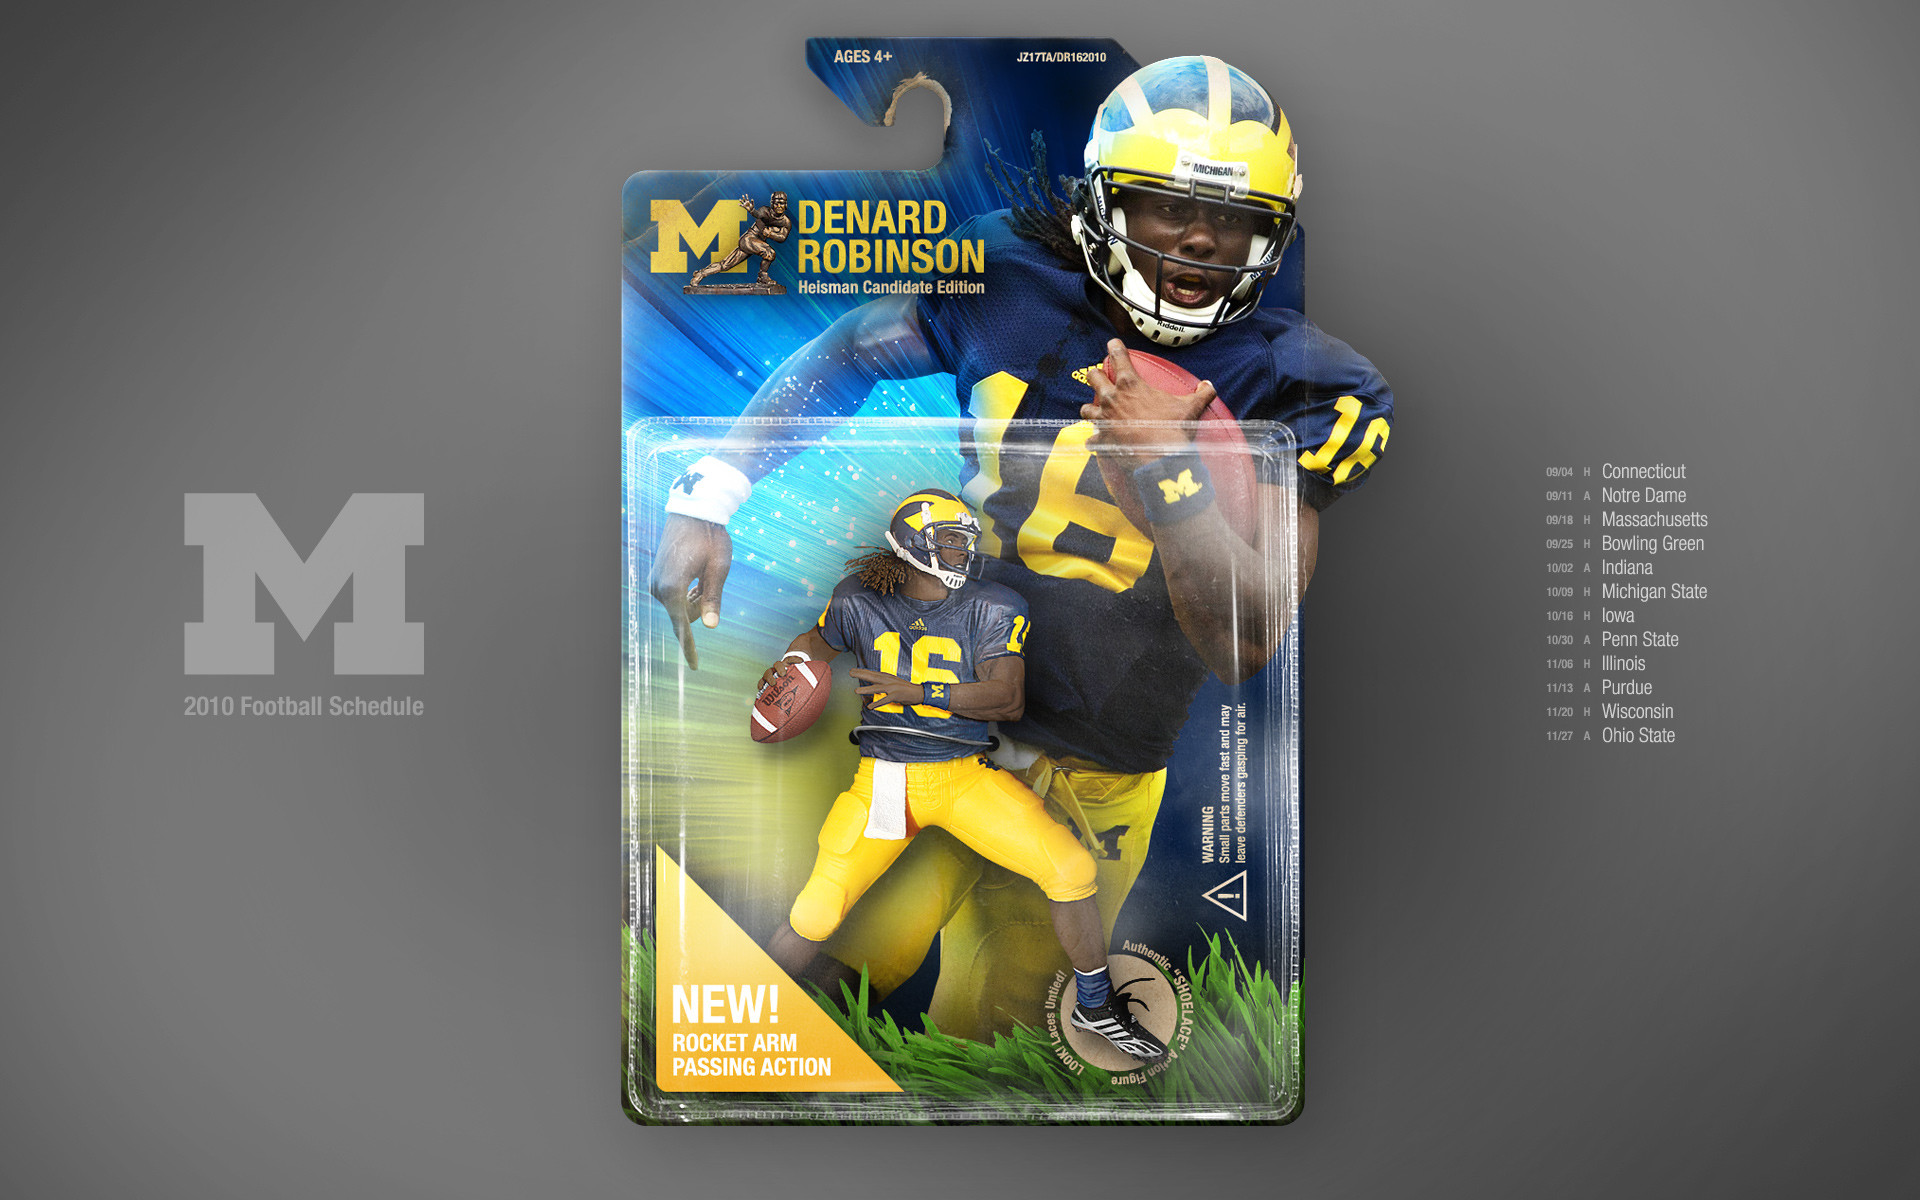 OT: Denard in Plastic?! That is one bad ass action figure!